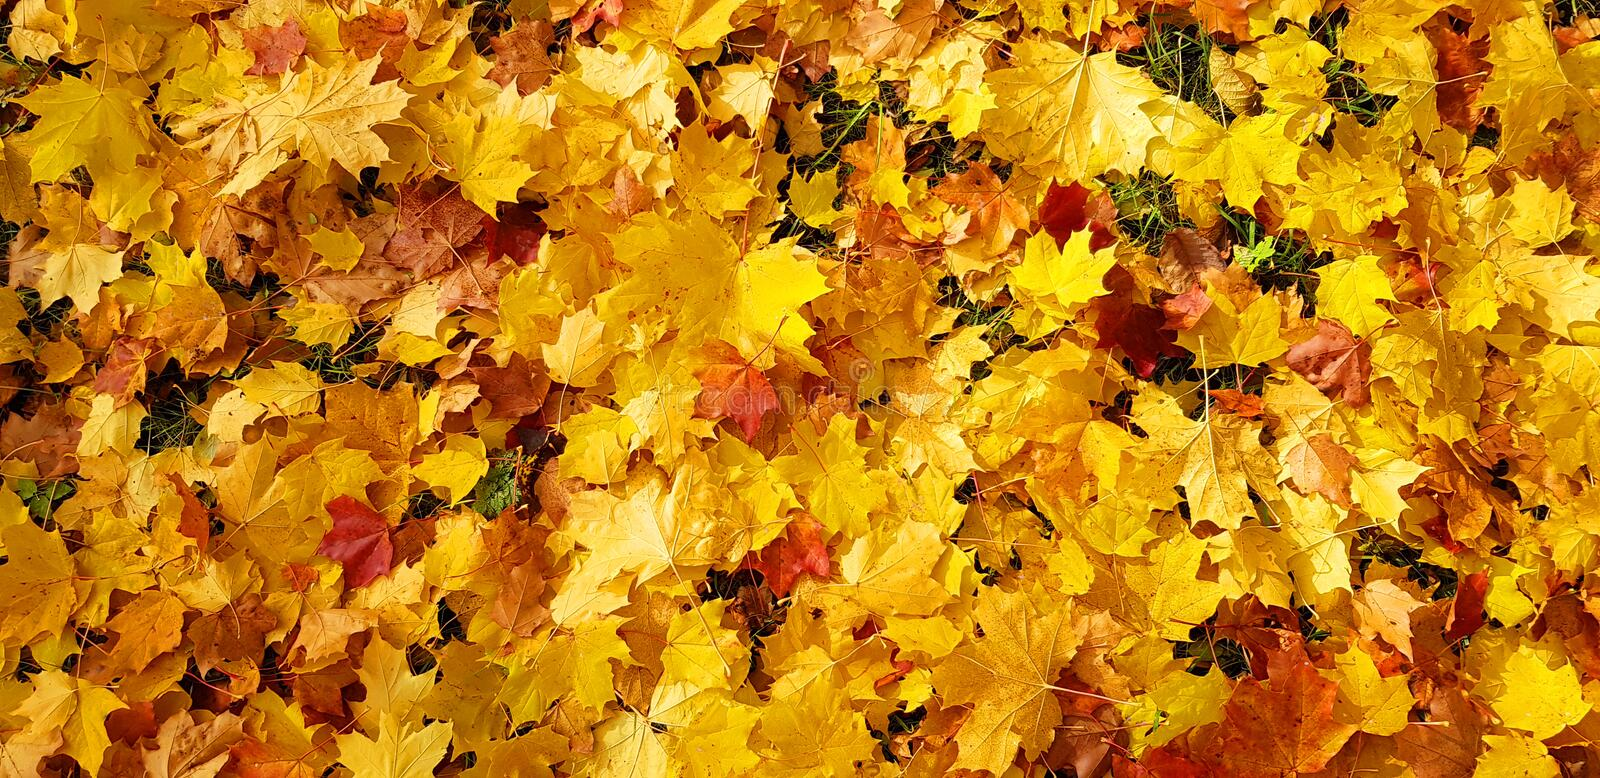 Red orange yellow maple leaves lie on the ground colorful autumn background.  royalty free stock photography